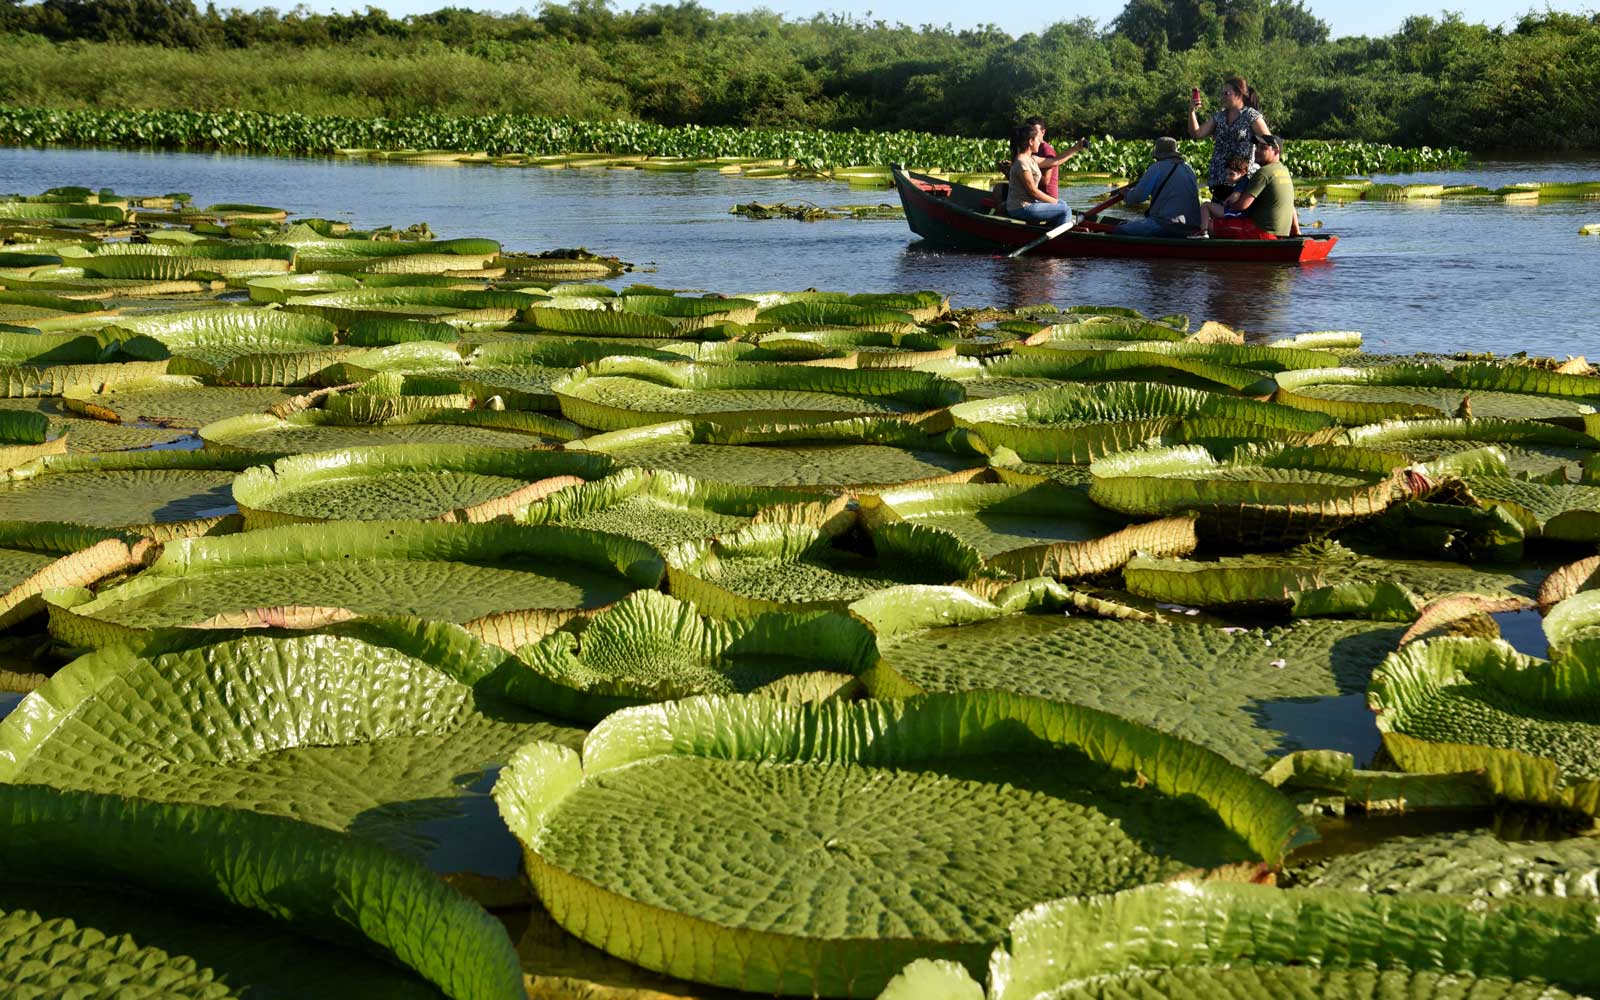 Giant water lilies in Paraguay River in Piquete Cue just north of Asuncion, on January 8, 2018.